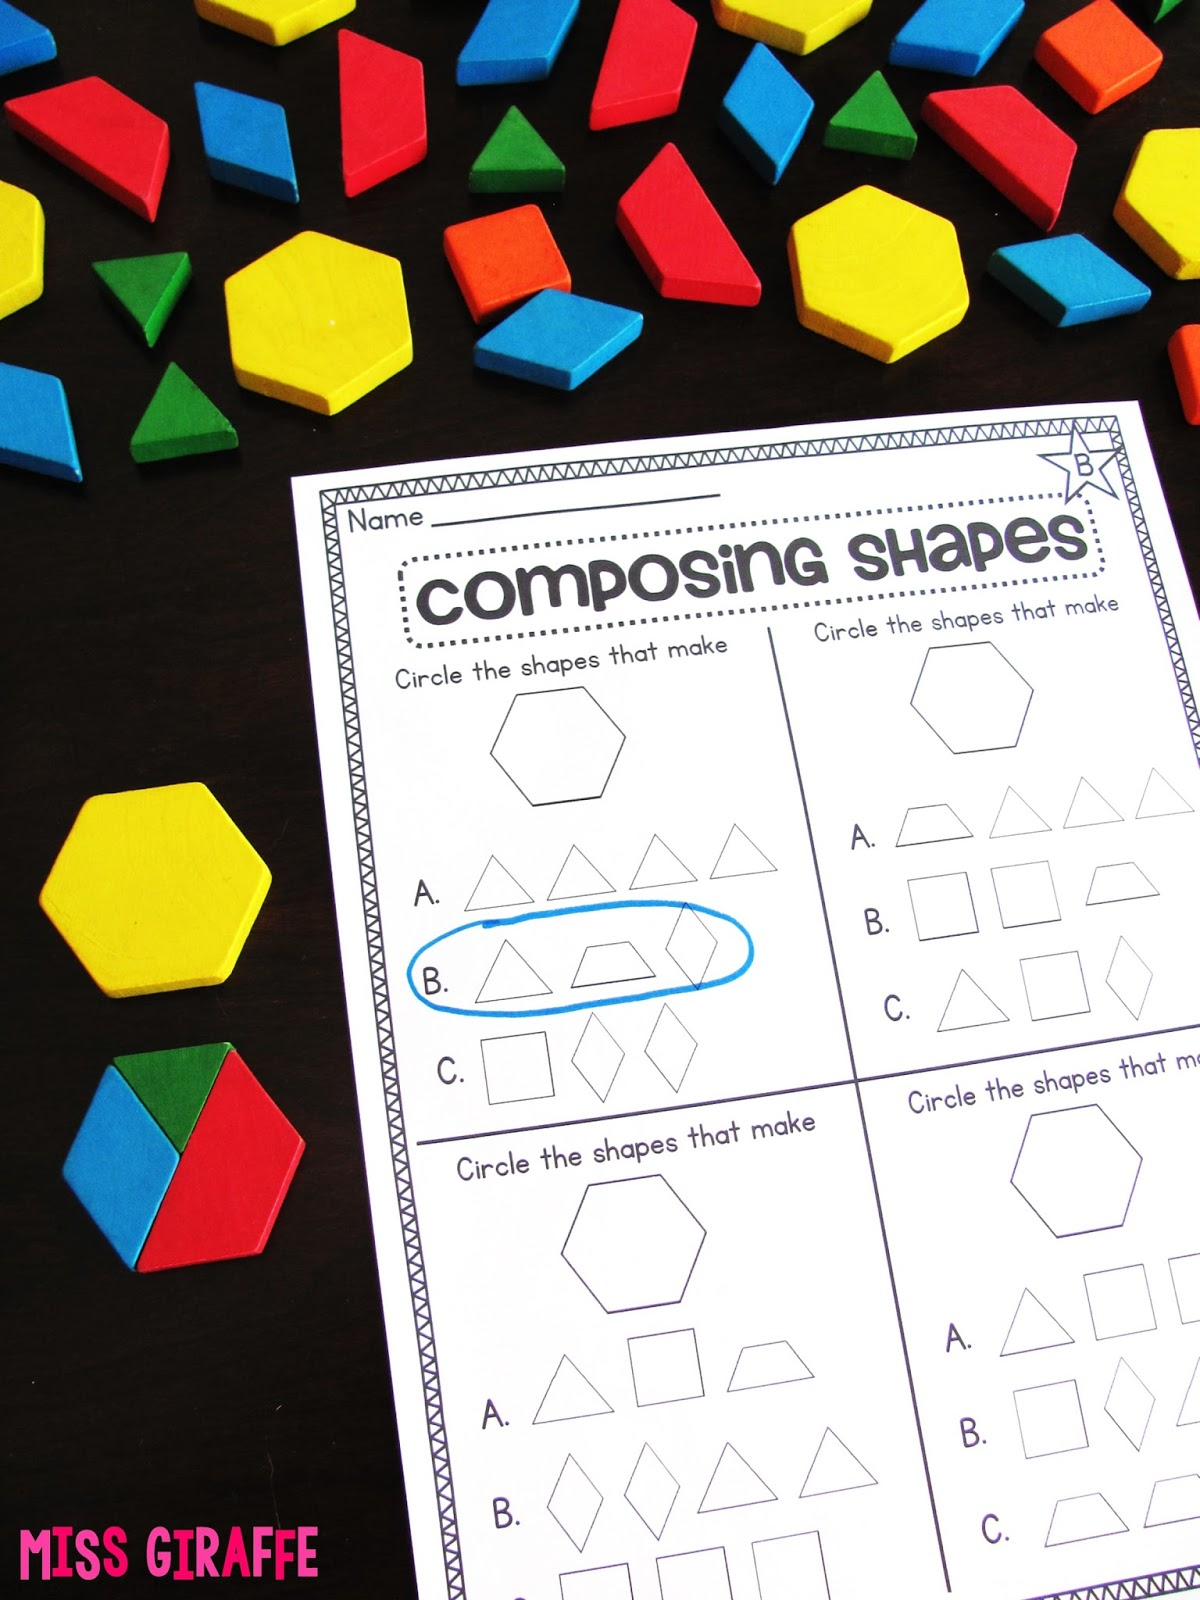 hight resolution of Miss Giraffe's Class: Composing Shapes in 1st Grade